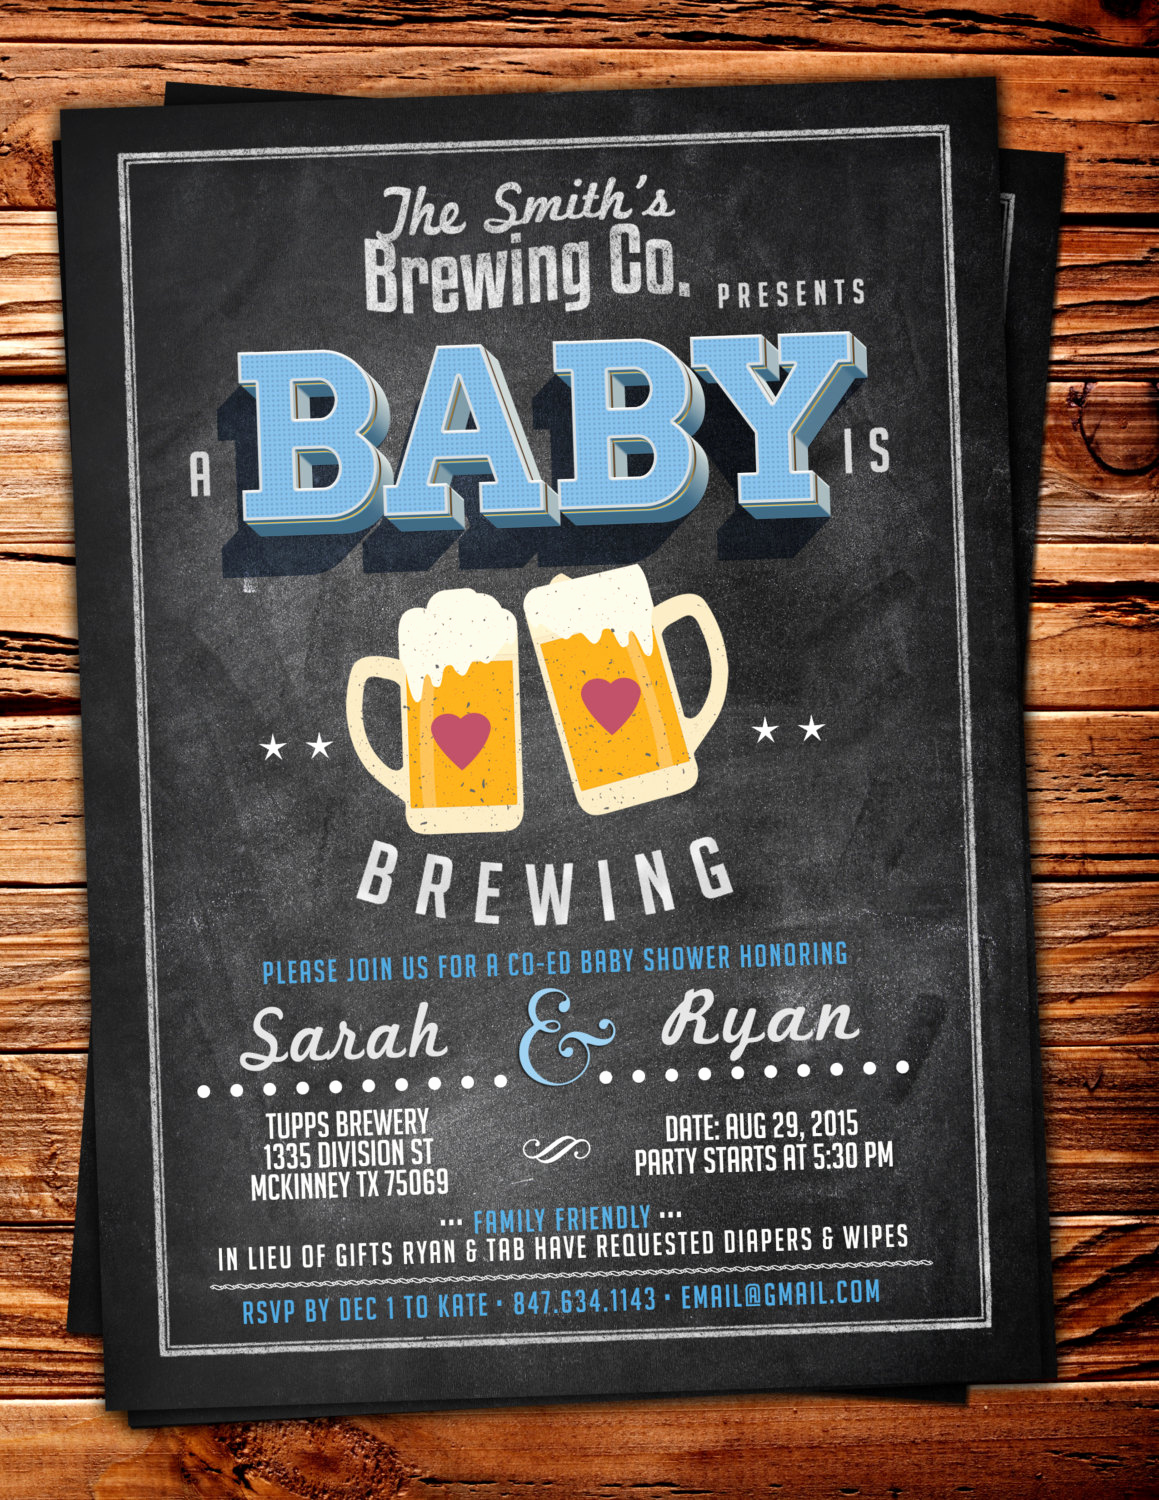 Coed Shower Invitation Wording Inspirational Coed Baby Shower Invitation Beer Baby Shower Invitation